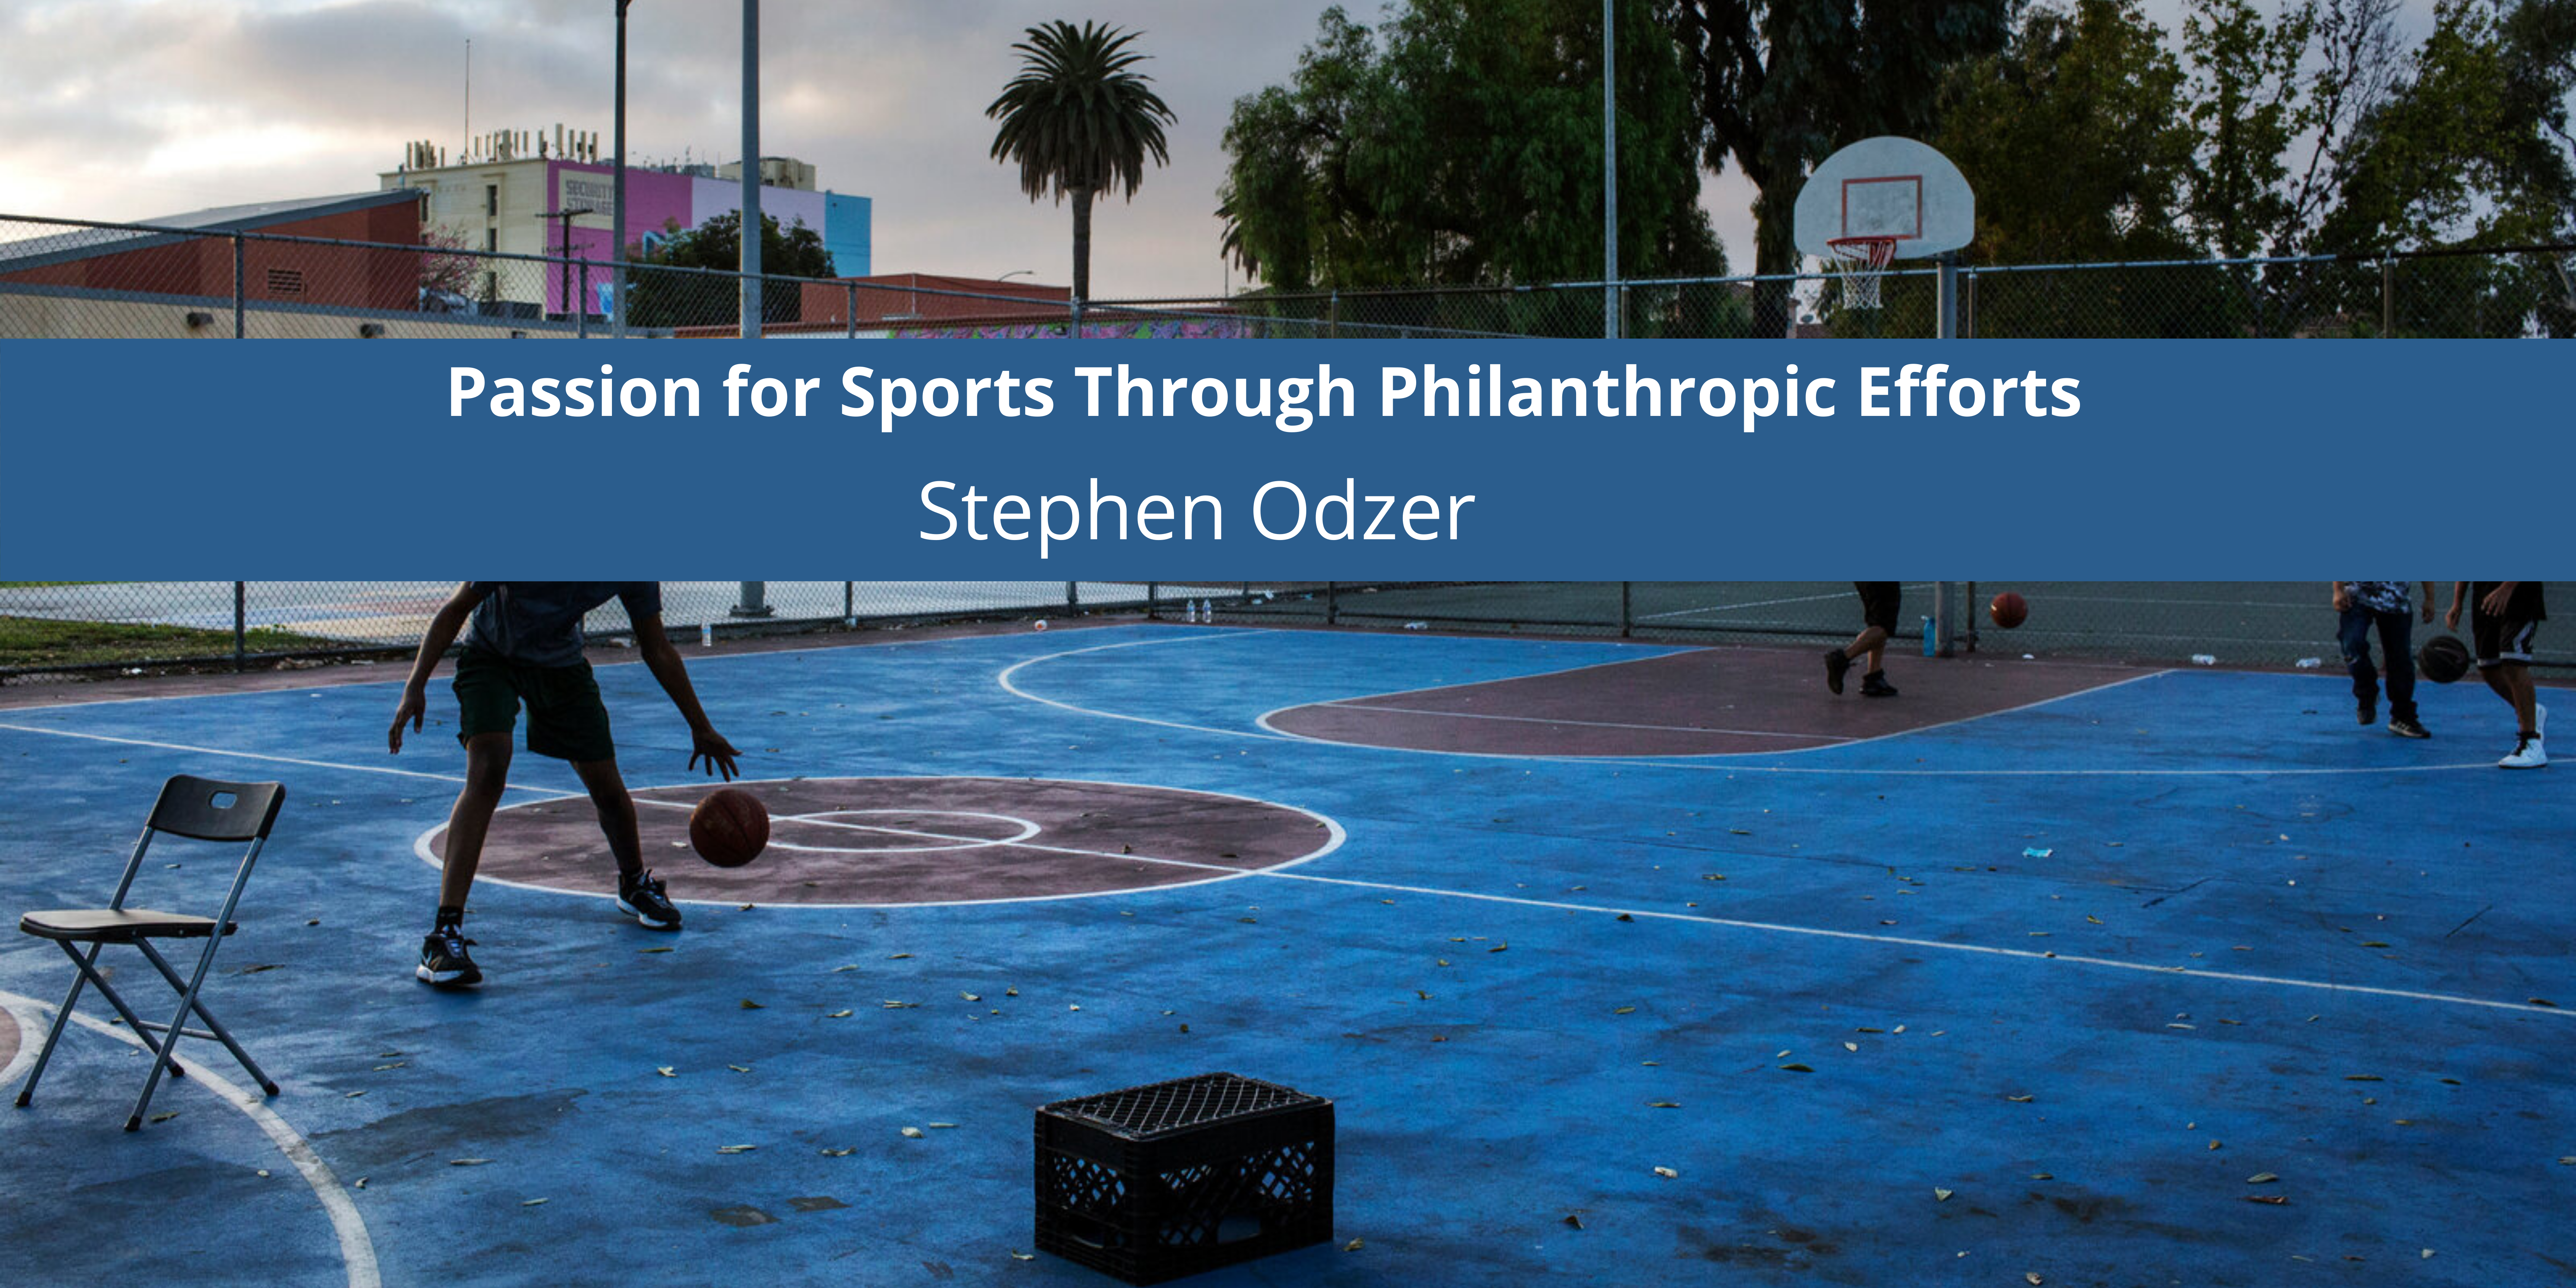 Passion for Sports Through Philanthropic Efforts